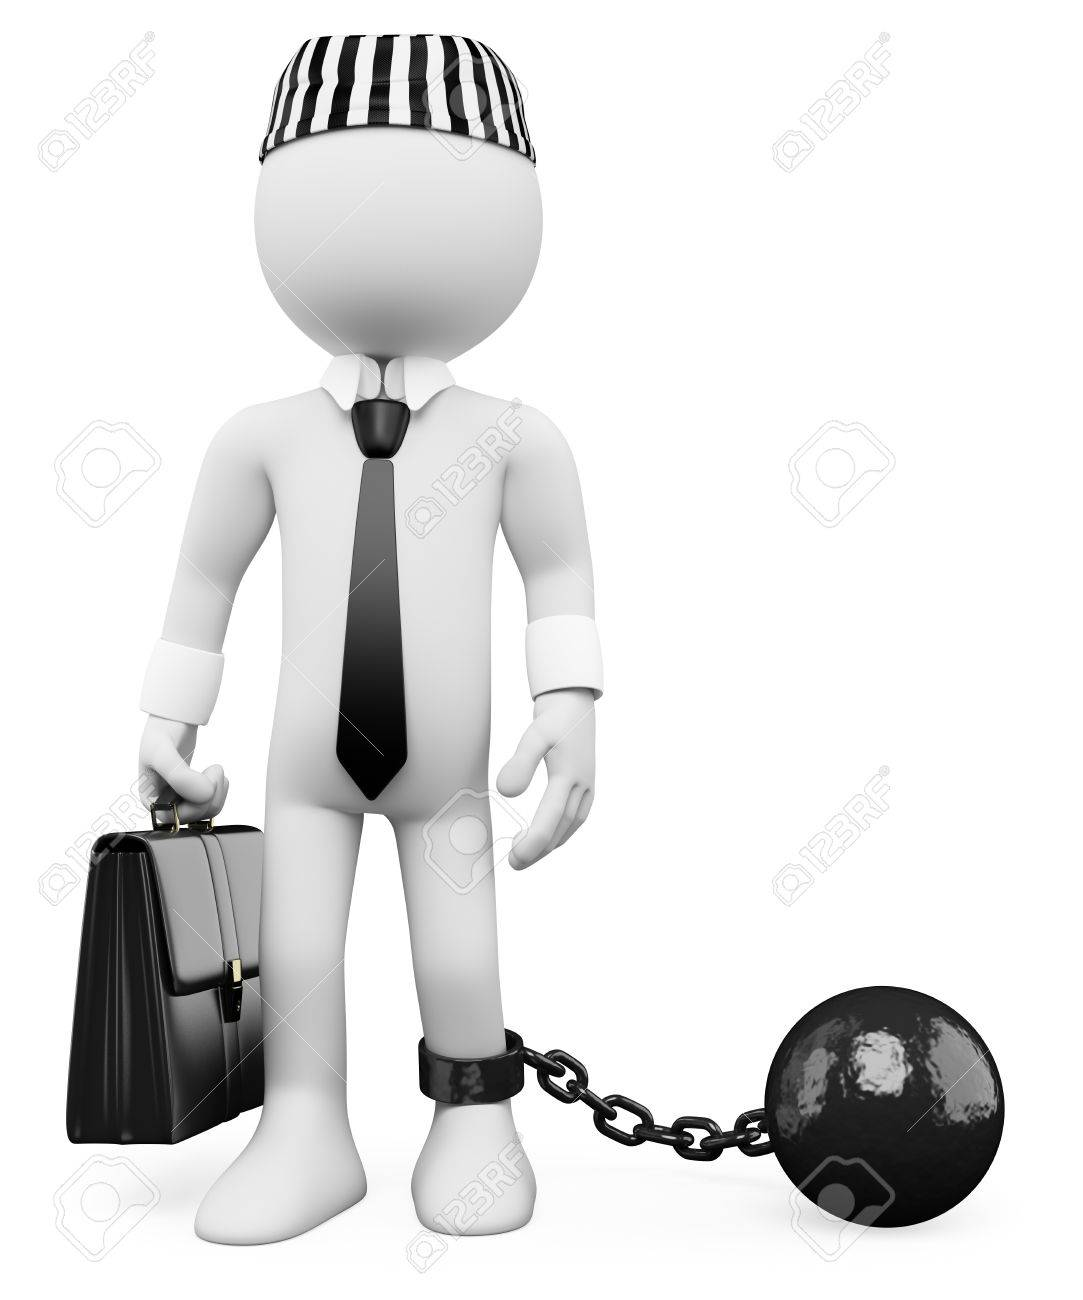 3d white corrupt politician dragging a metal ball. 3d image. Isolated white background. Stock Photo - 17852473